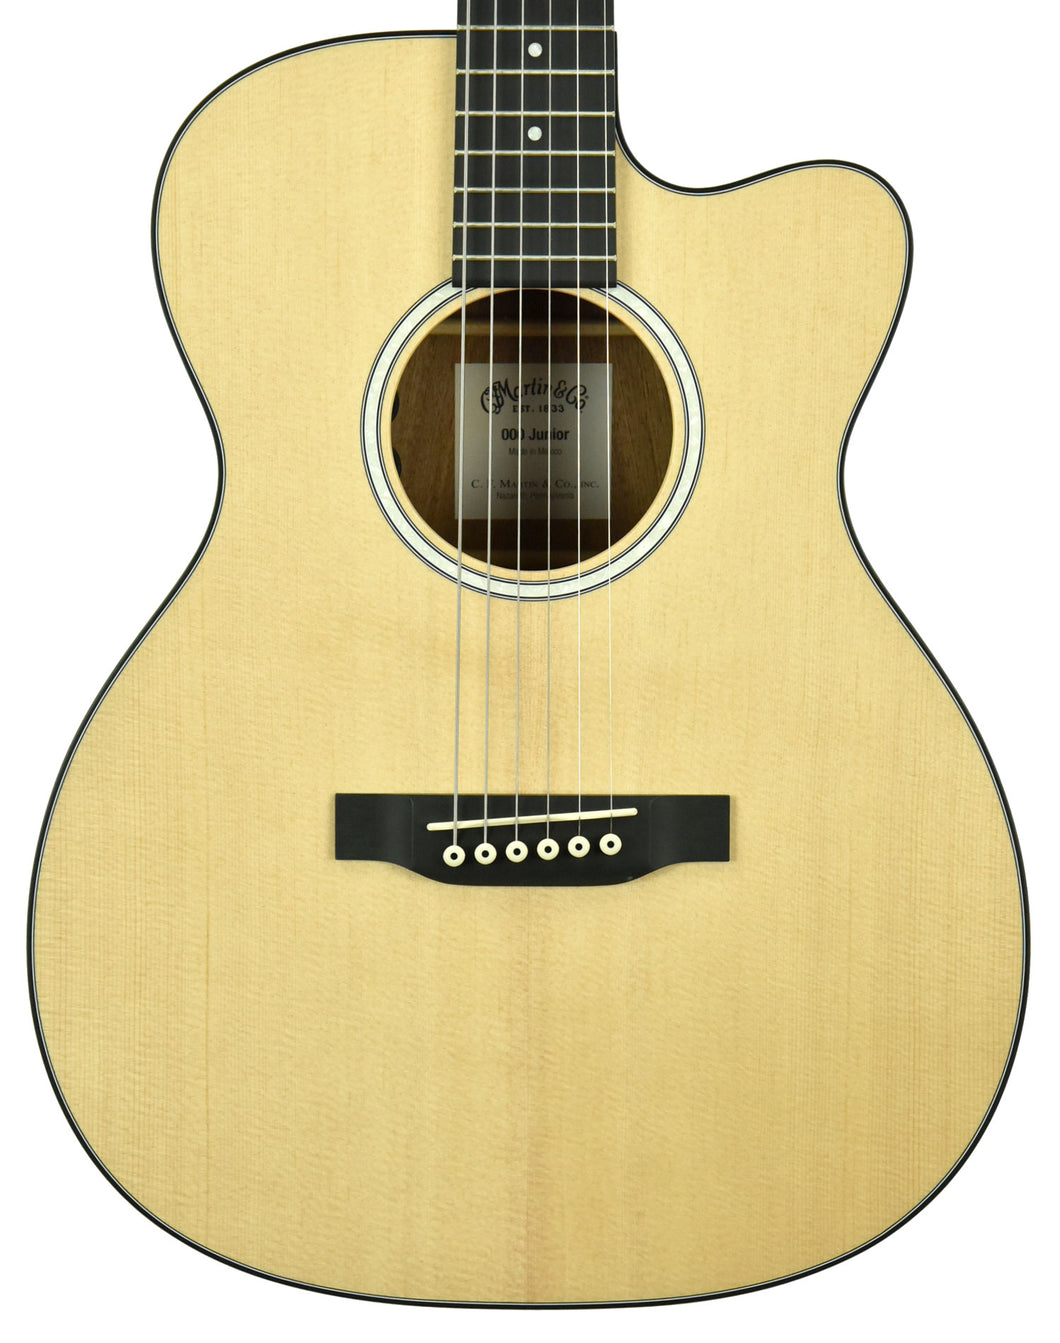 Martin 000-CJRe Acoustic Electric Guitar 2323731 - The Music Gallery